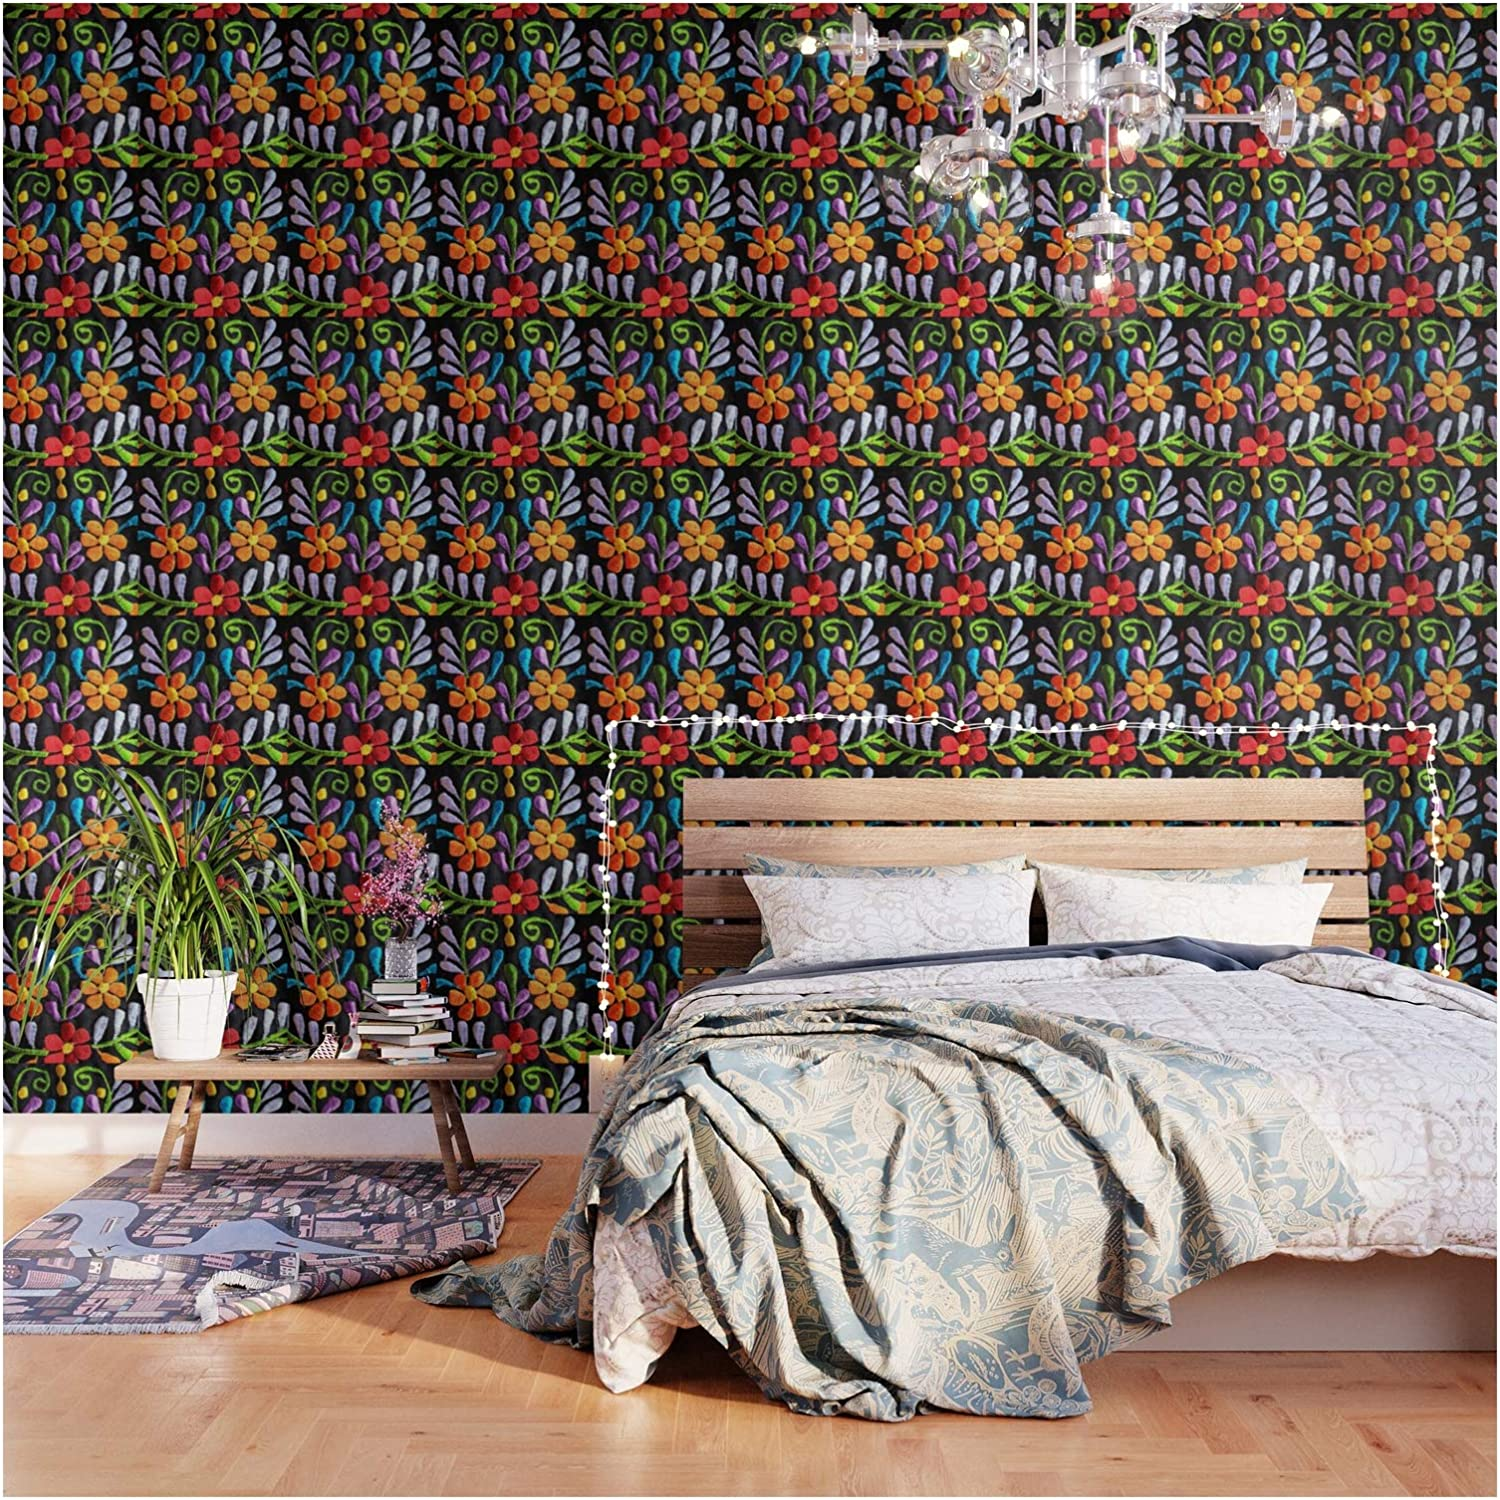 Mexican Flowers by Tina Salazar on Max 59% OFF Wallpaper Max 65% OFF and Peel - 2' Stick